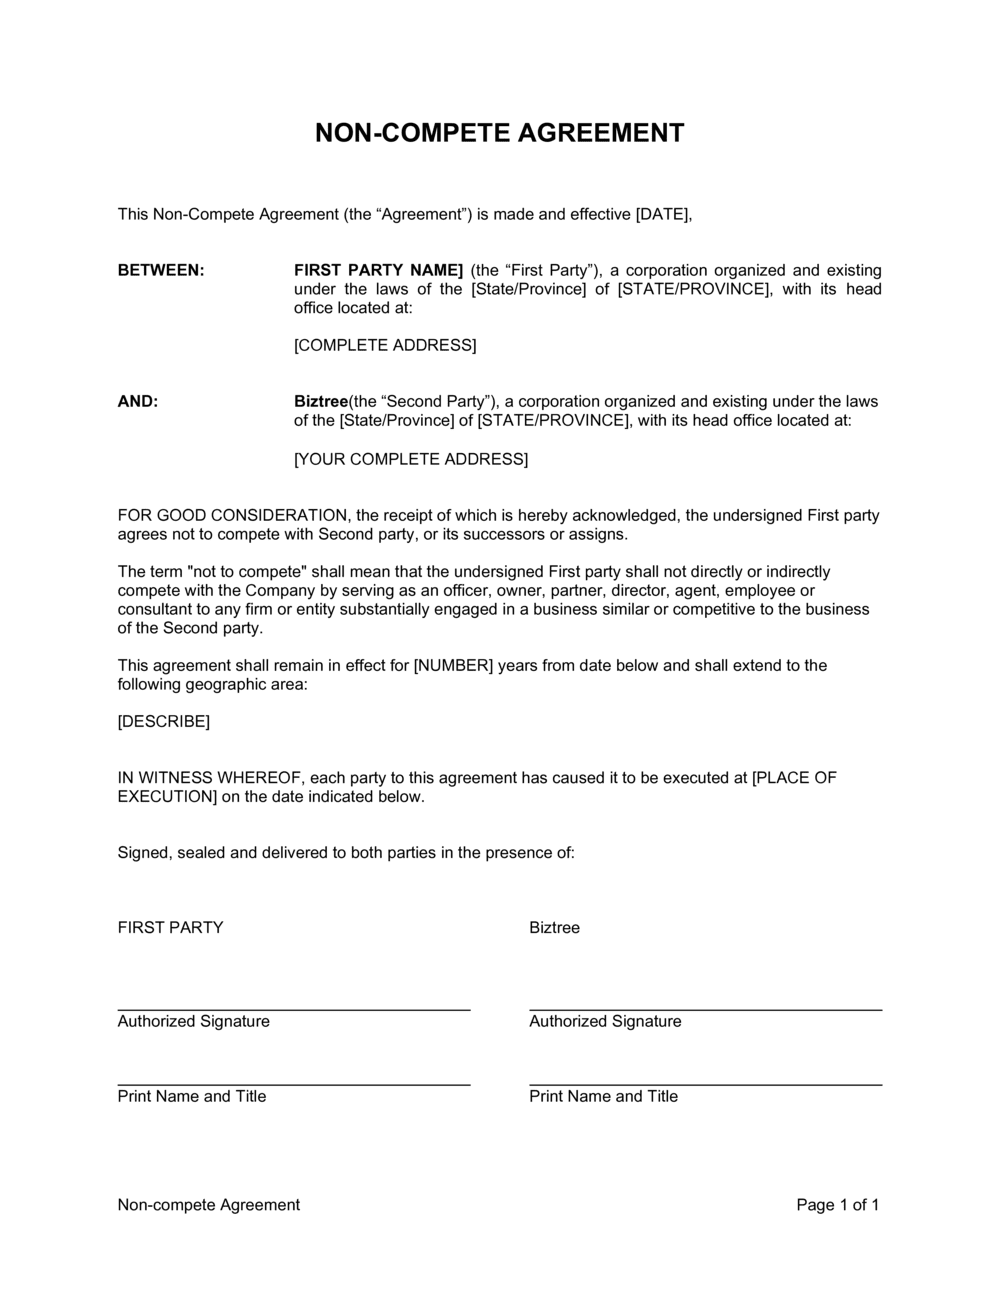 Business-in-a-Box's General Non-Compete Agreement Template